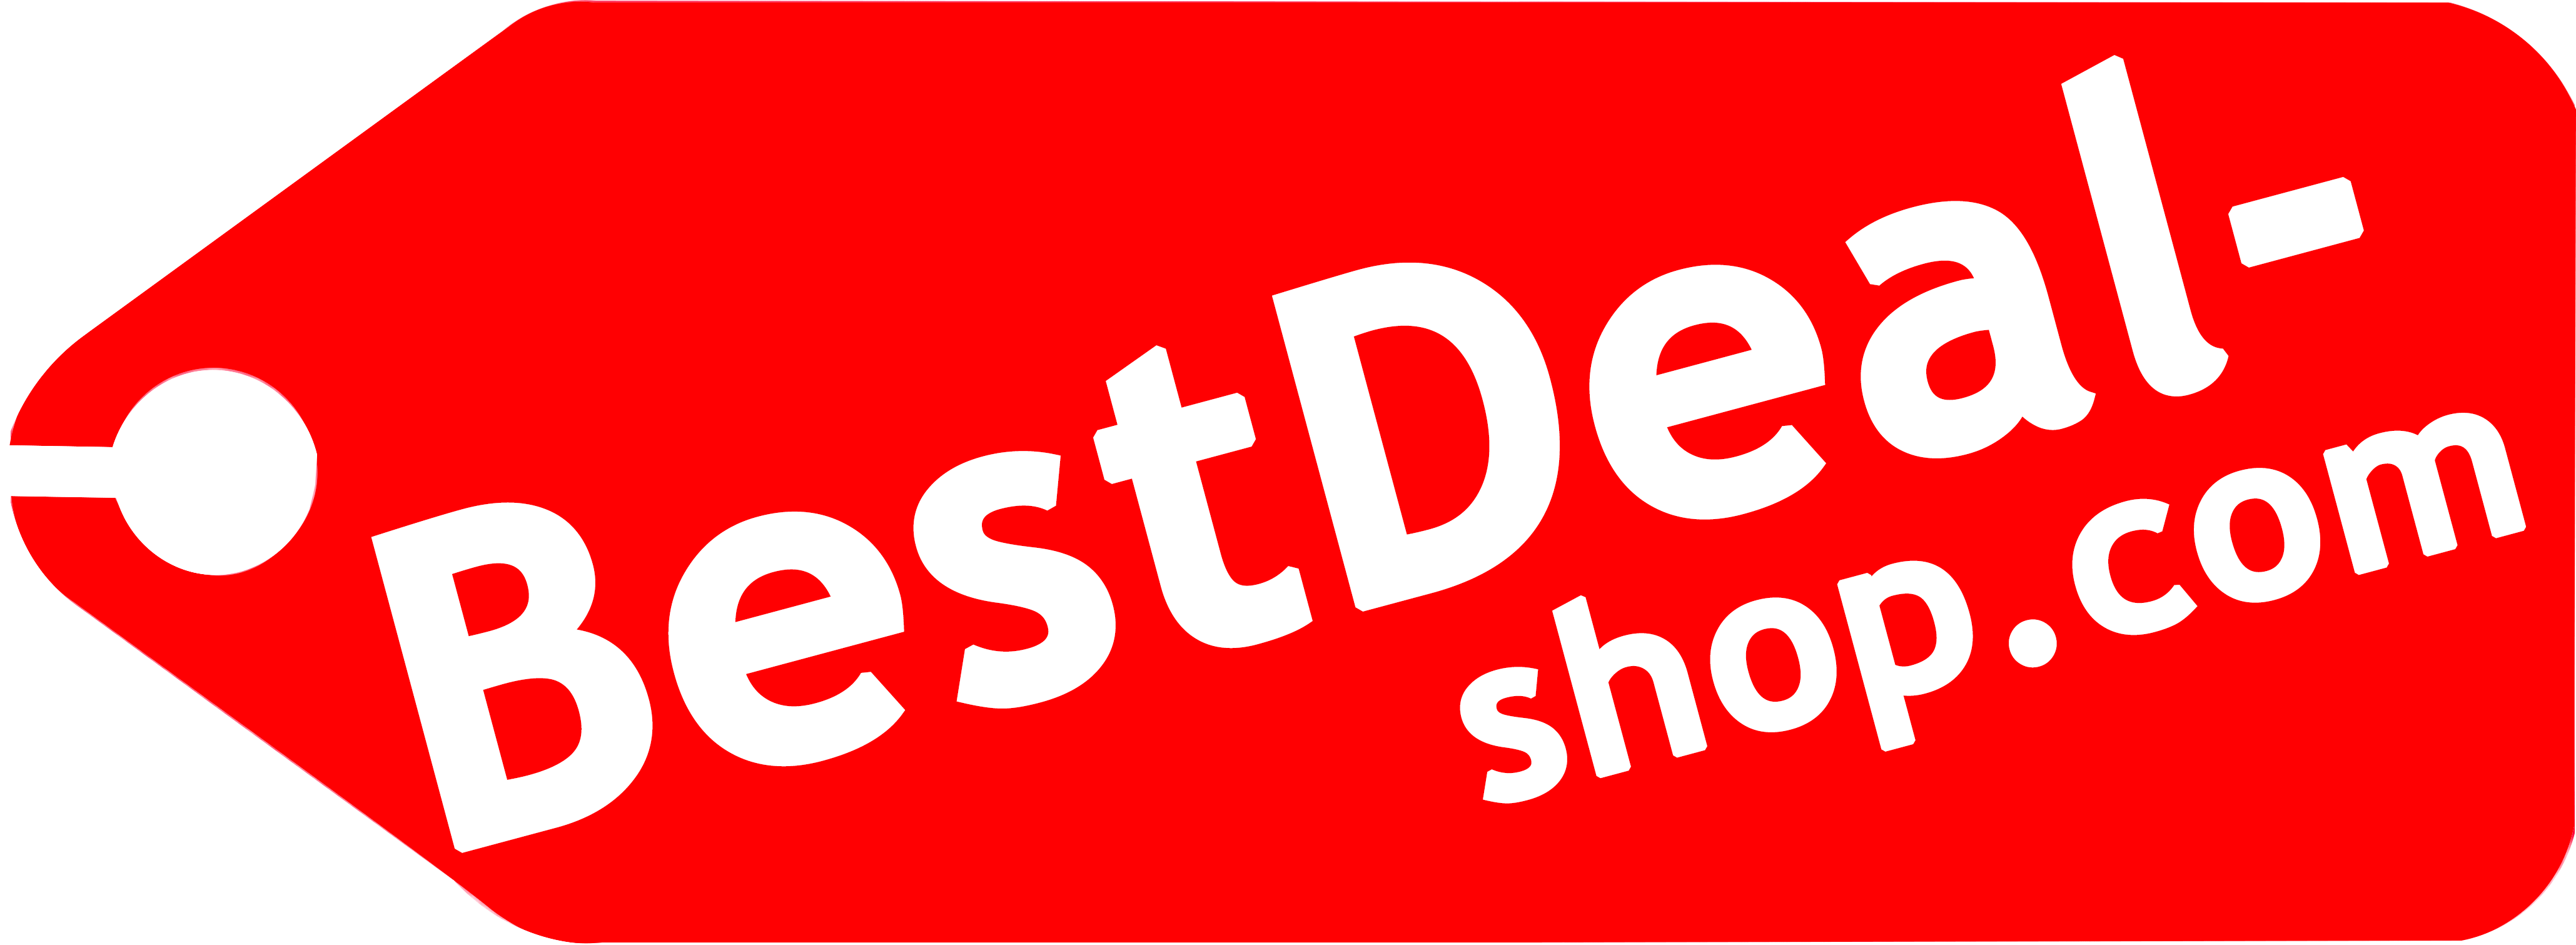 Bestdeal-shop.com